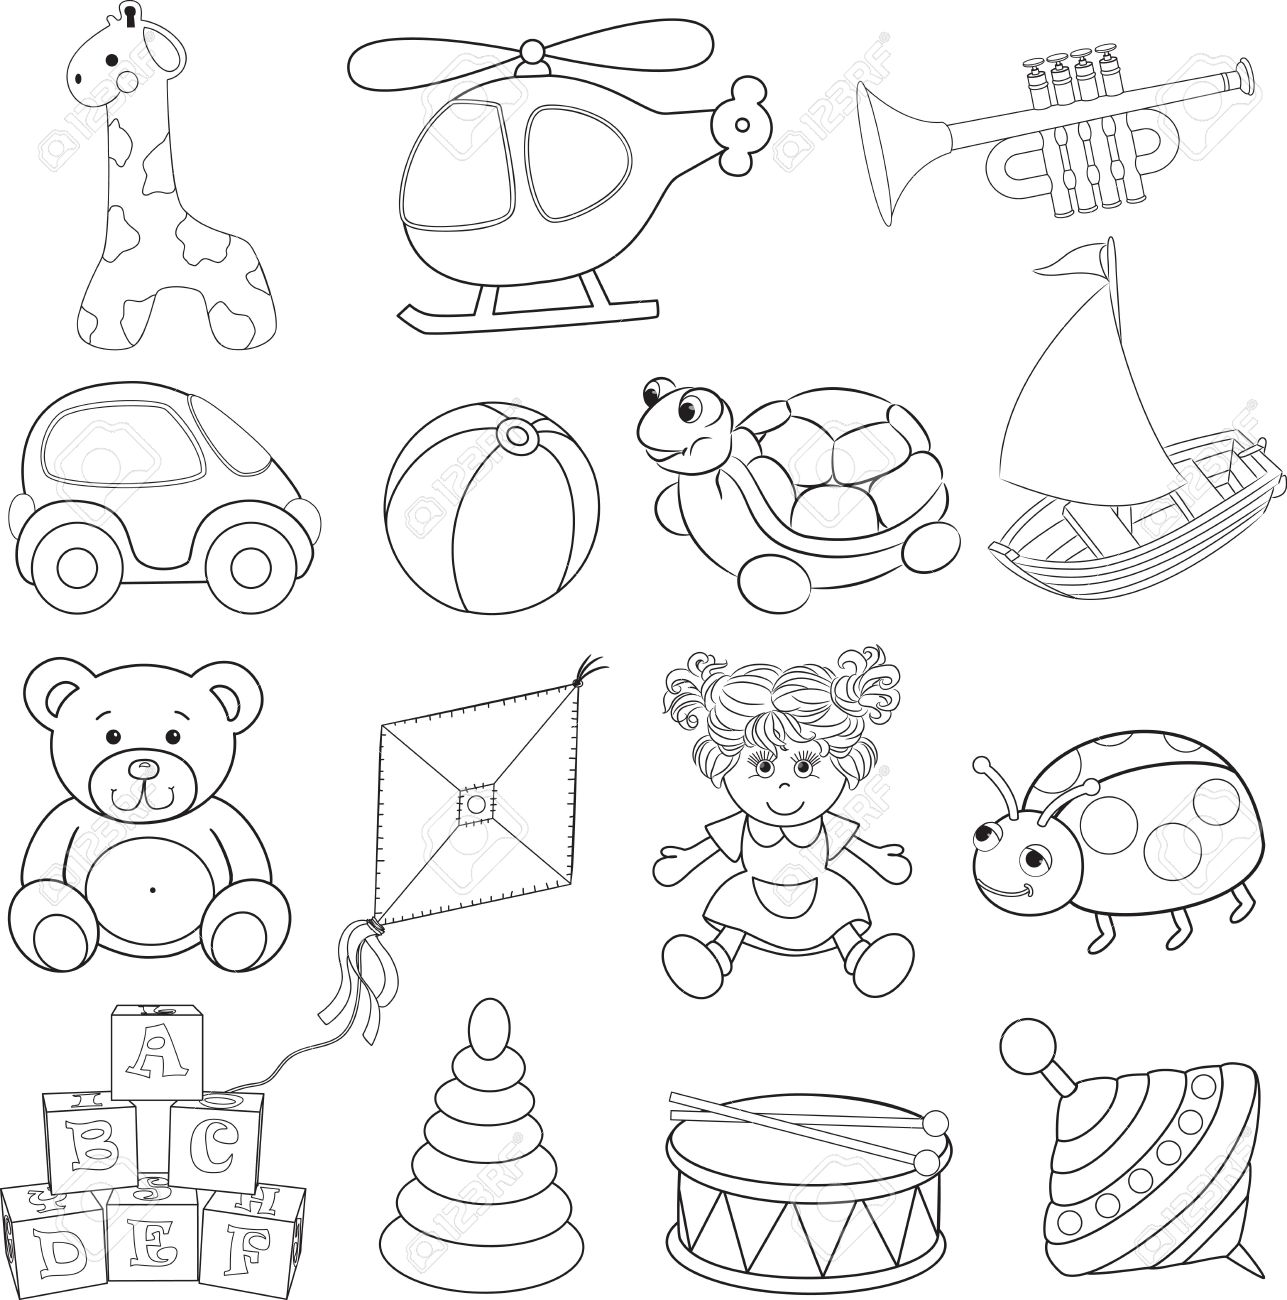 Baby Toys Drawing At Getdrawings